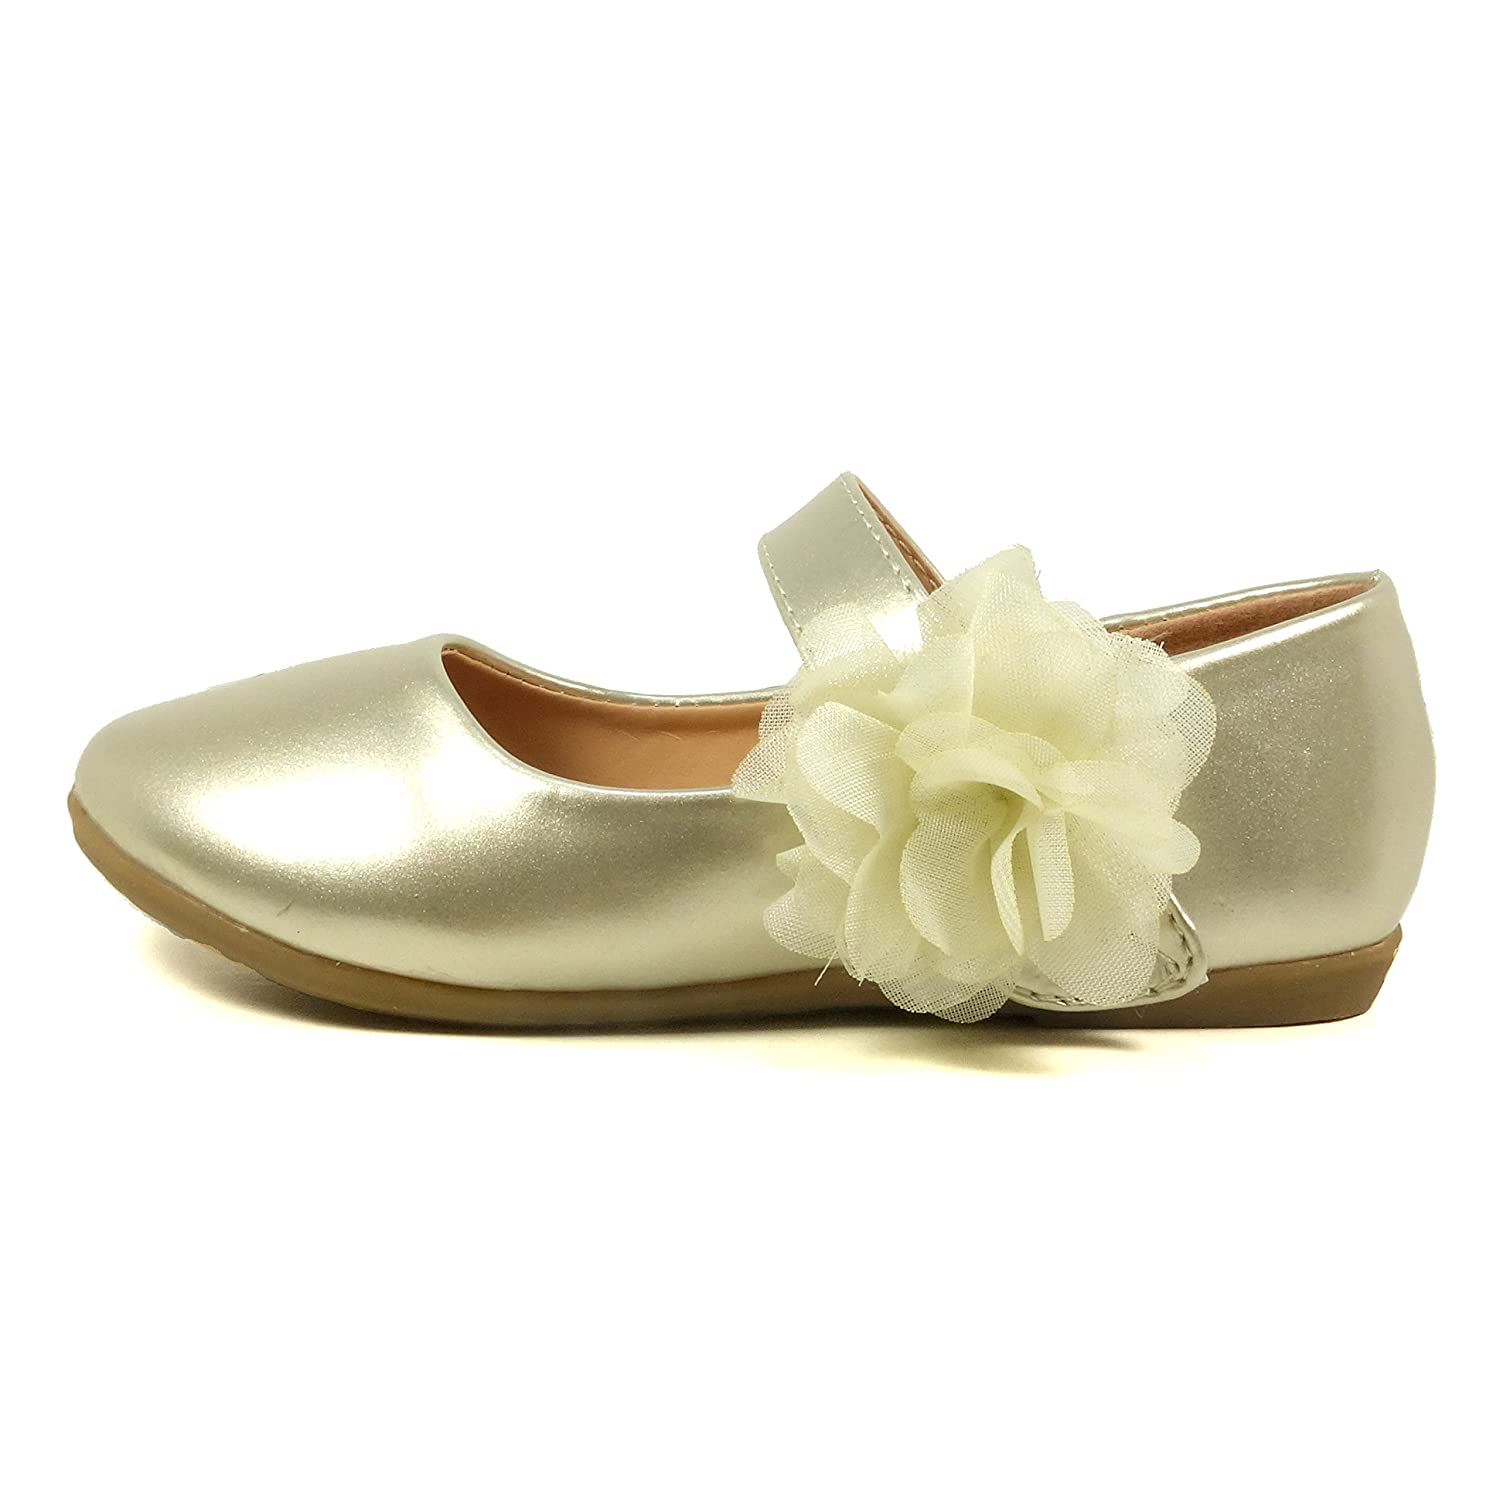 3a40b5a7ac55 Nova Utopia Gold Toddler Little Girls Flower Flower Girl Dress Ballet  Toddler Mary Jane Bow Flat Shoes Flower M - Gold 6acc4f5 -  www.digital-law-library. ...